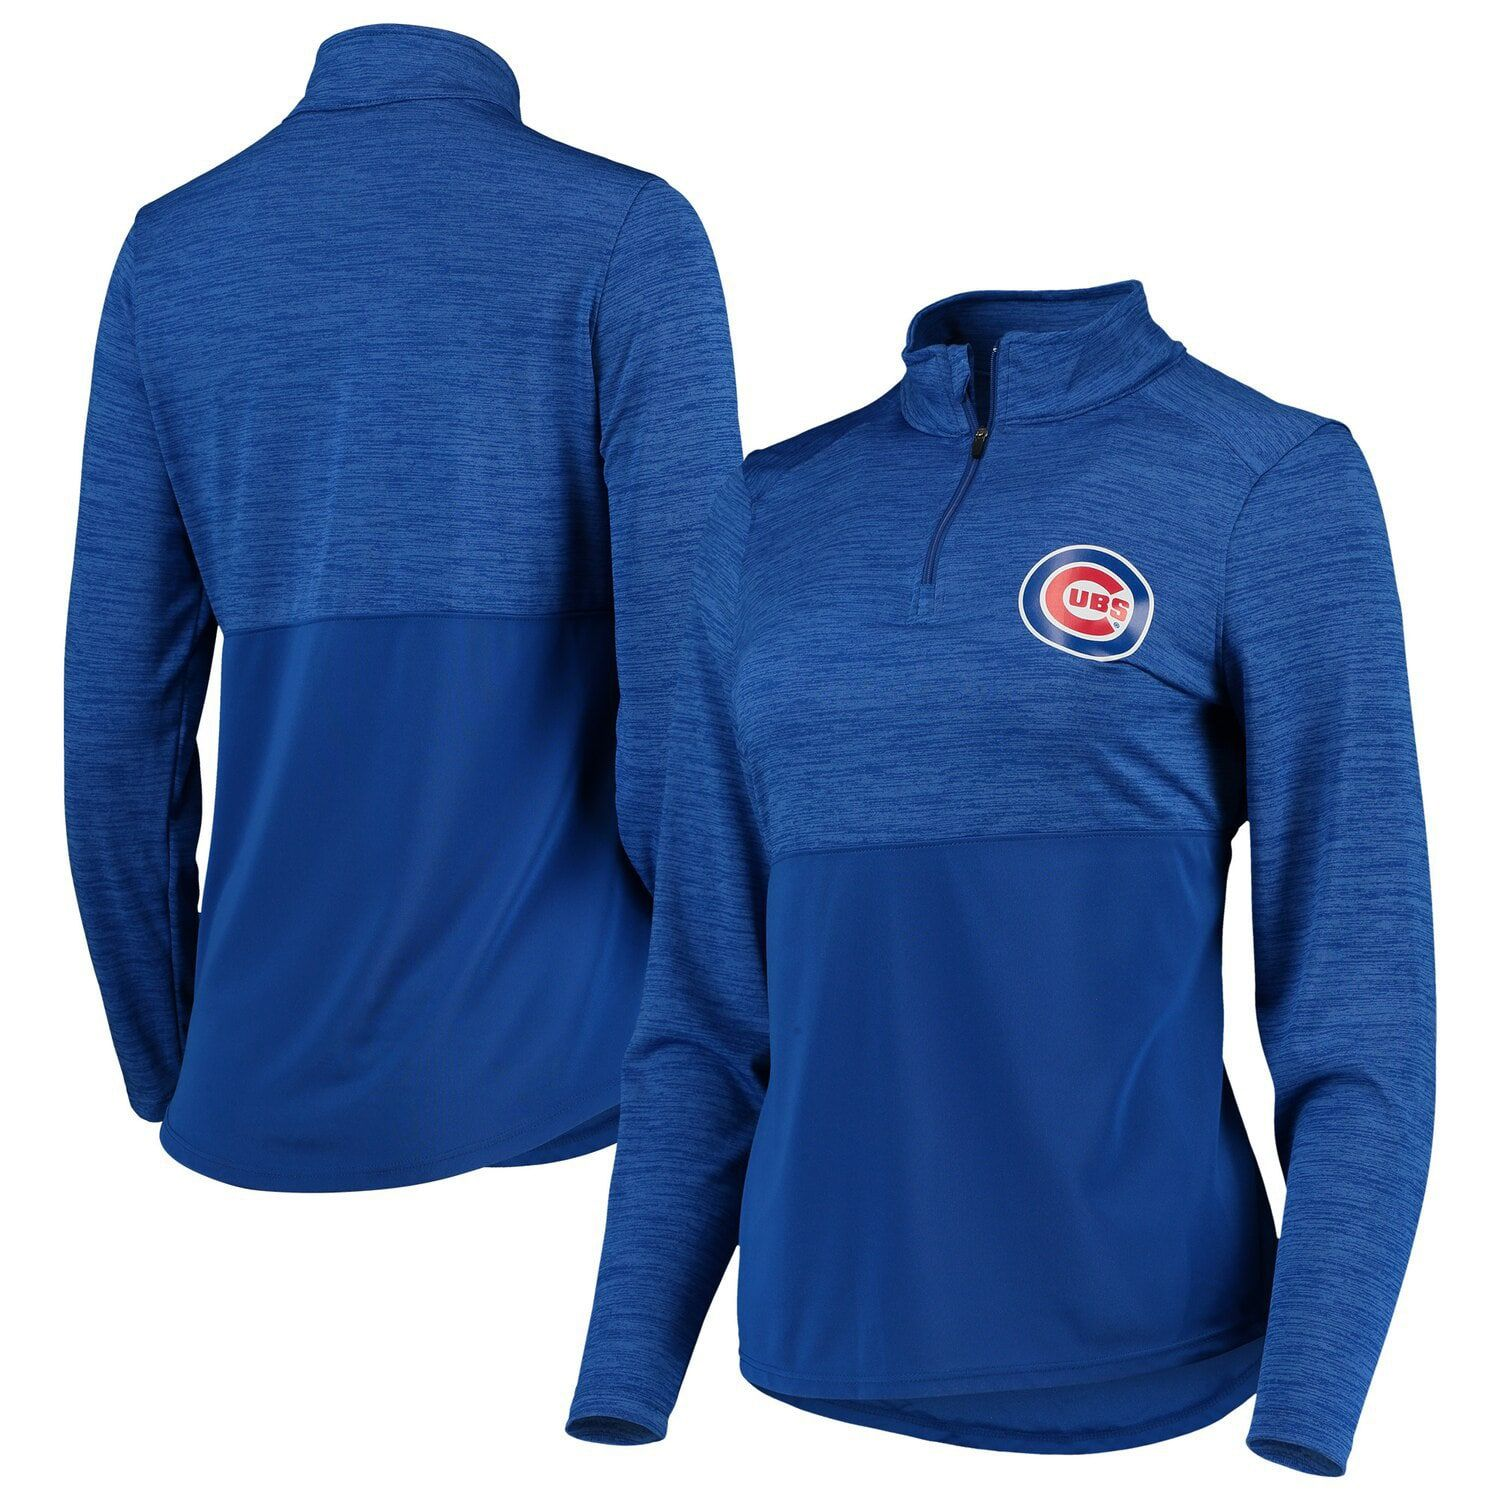 Women S Fanatics Branded Royal Chicago Cubs Quarter Zip Pullover Jacket Affiliate Royal Affiliate Quarter Zip Pullover Pullover Jacket Chicago Cubs Womens